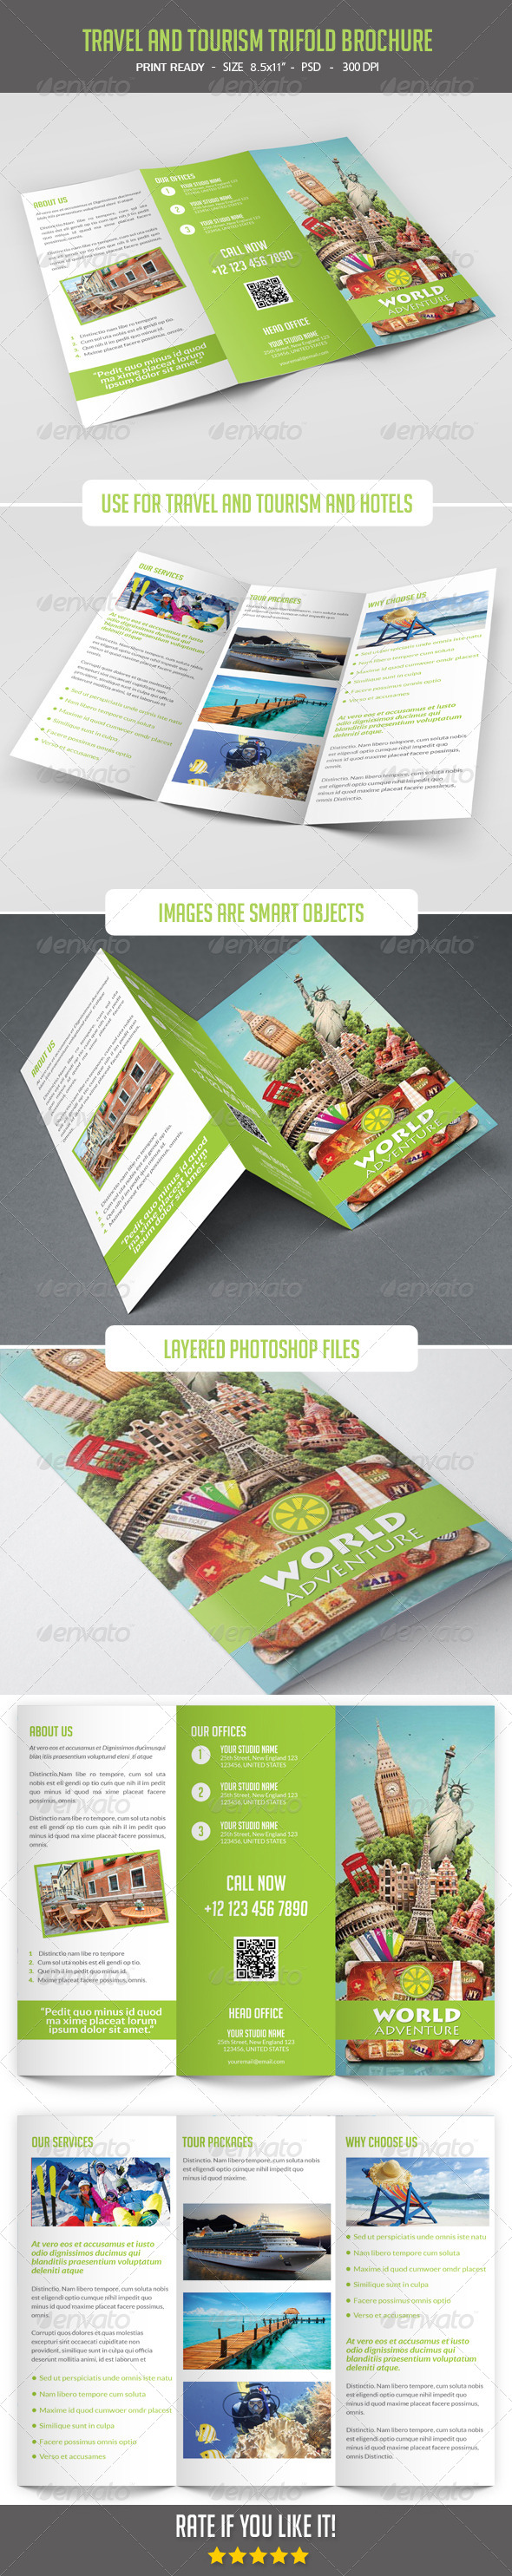 GraphicRiver Travel and Tourism Trifold Brochure 8067157